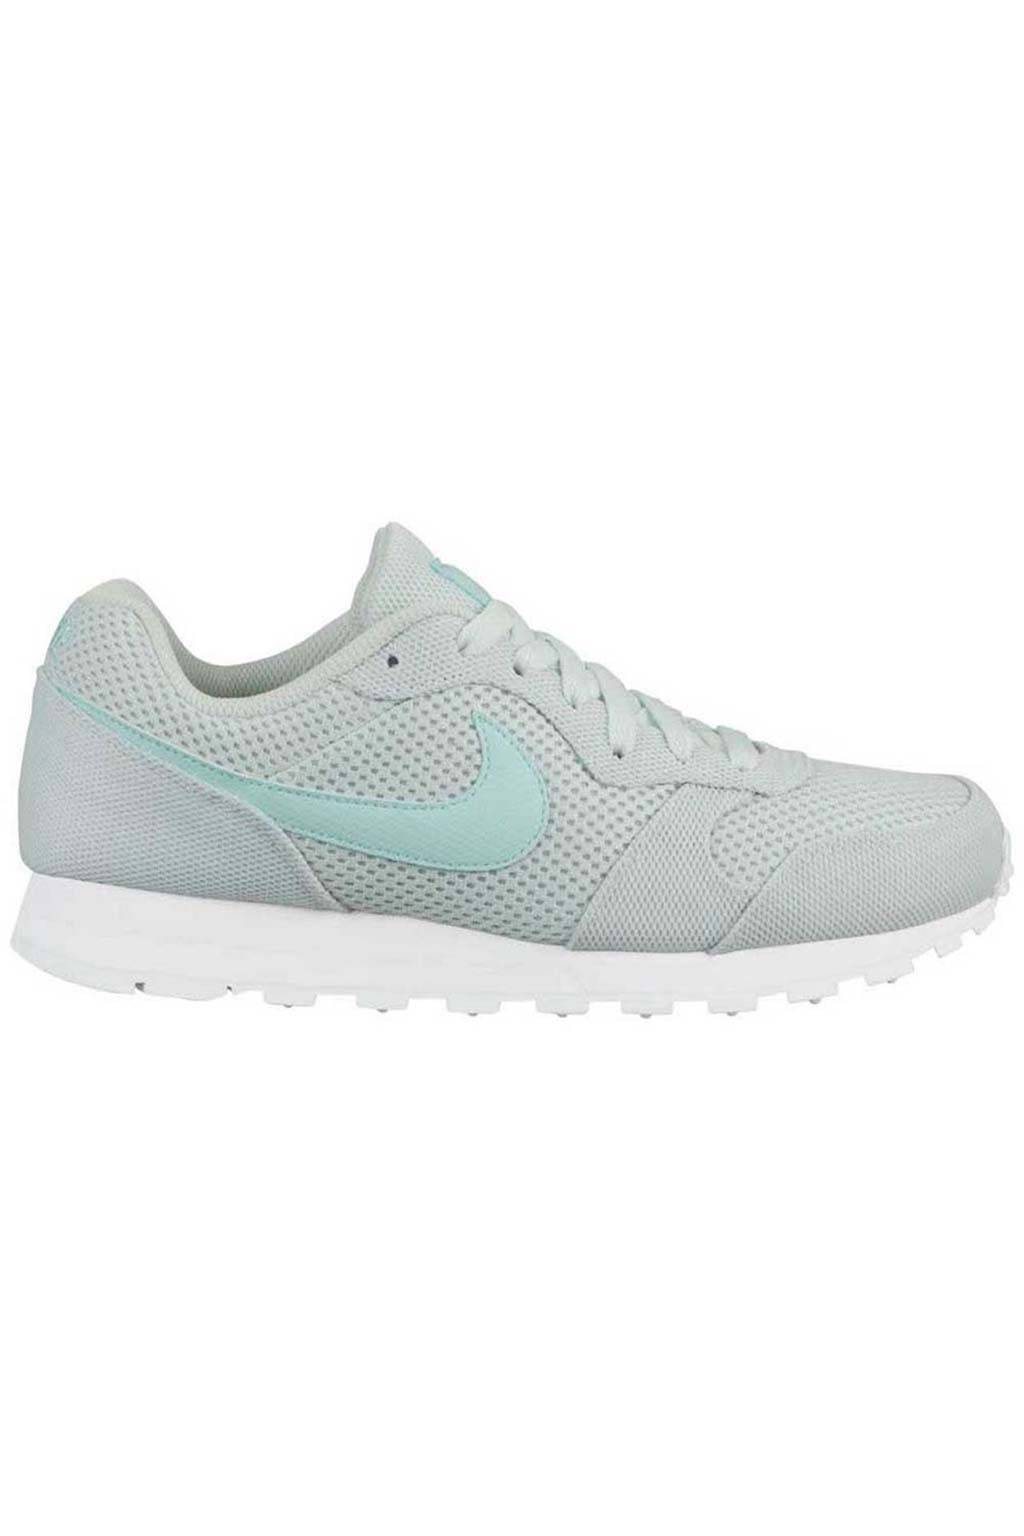 Nike MD Runner 2 SE AQ9121 400